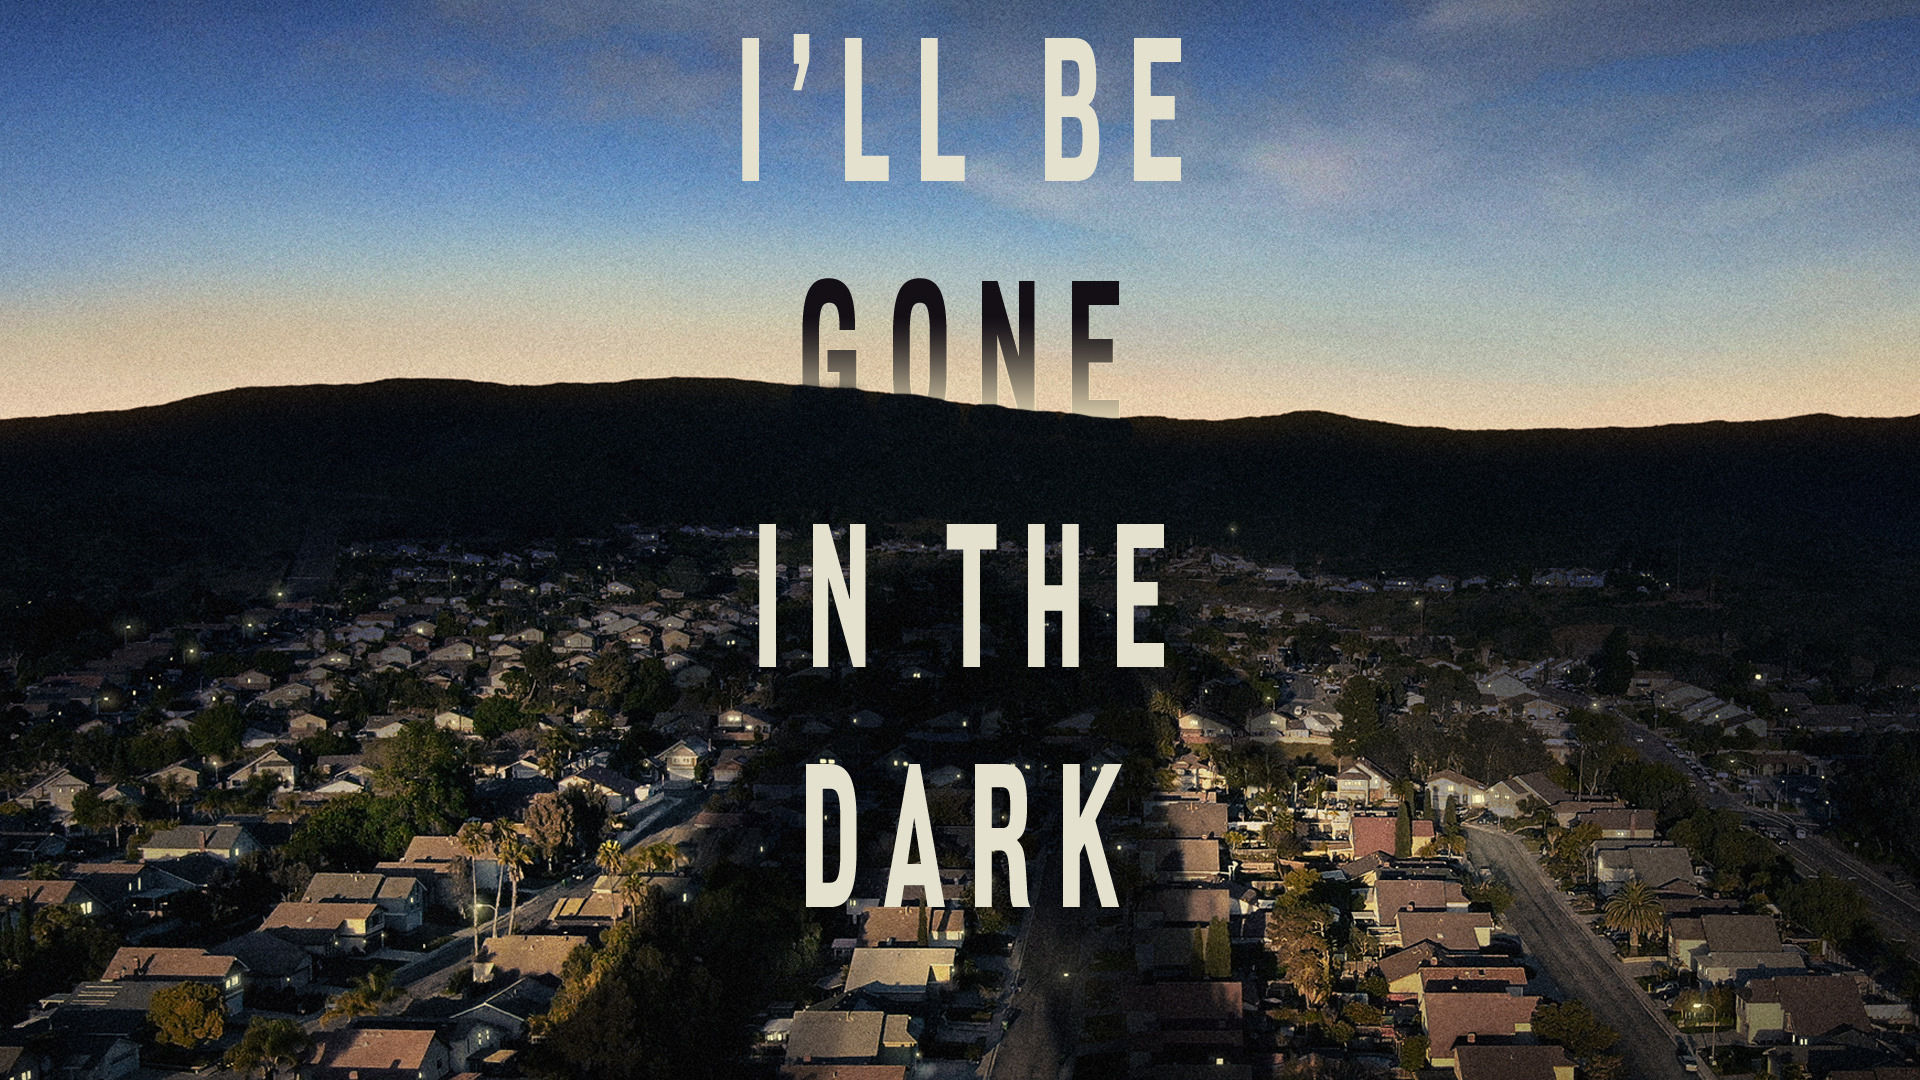 Show I'll Be Gone in the Dark